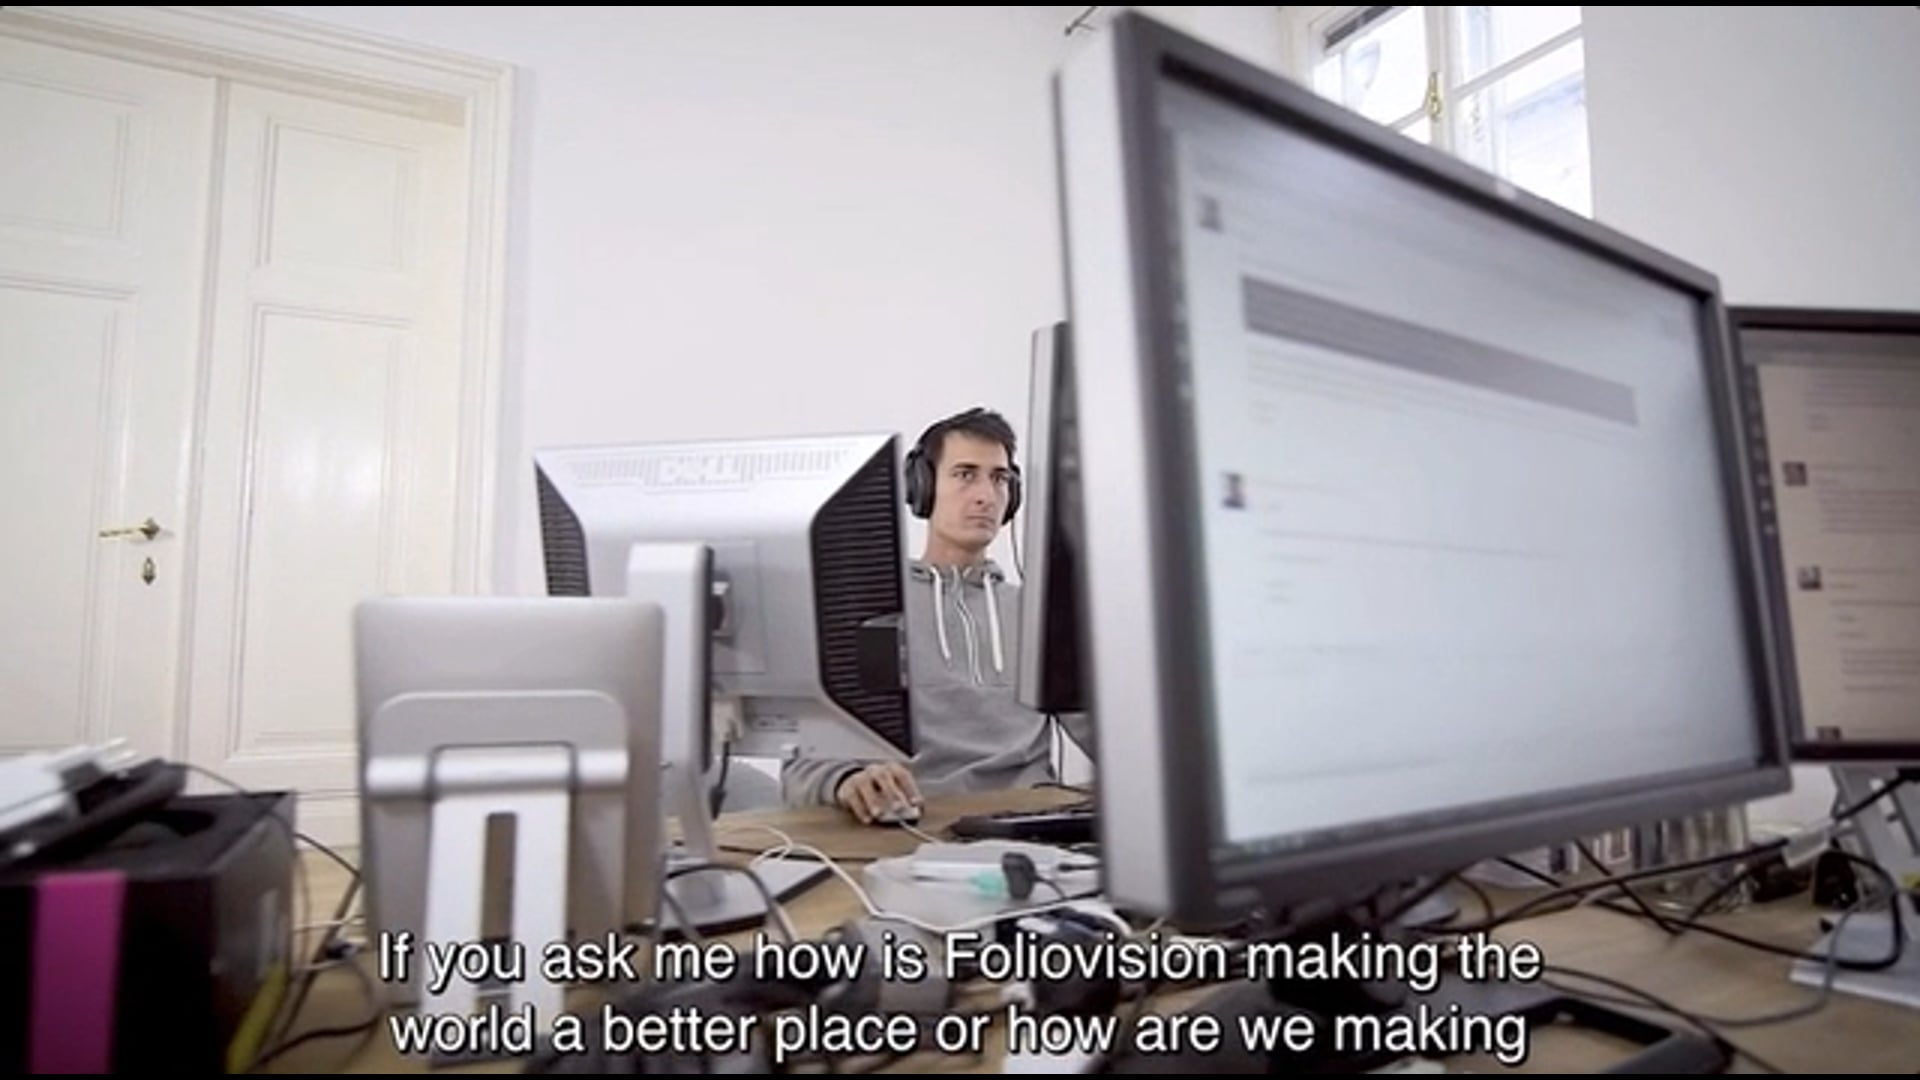 Result-How to burn subtitles into video